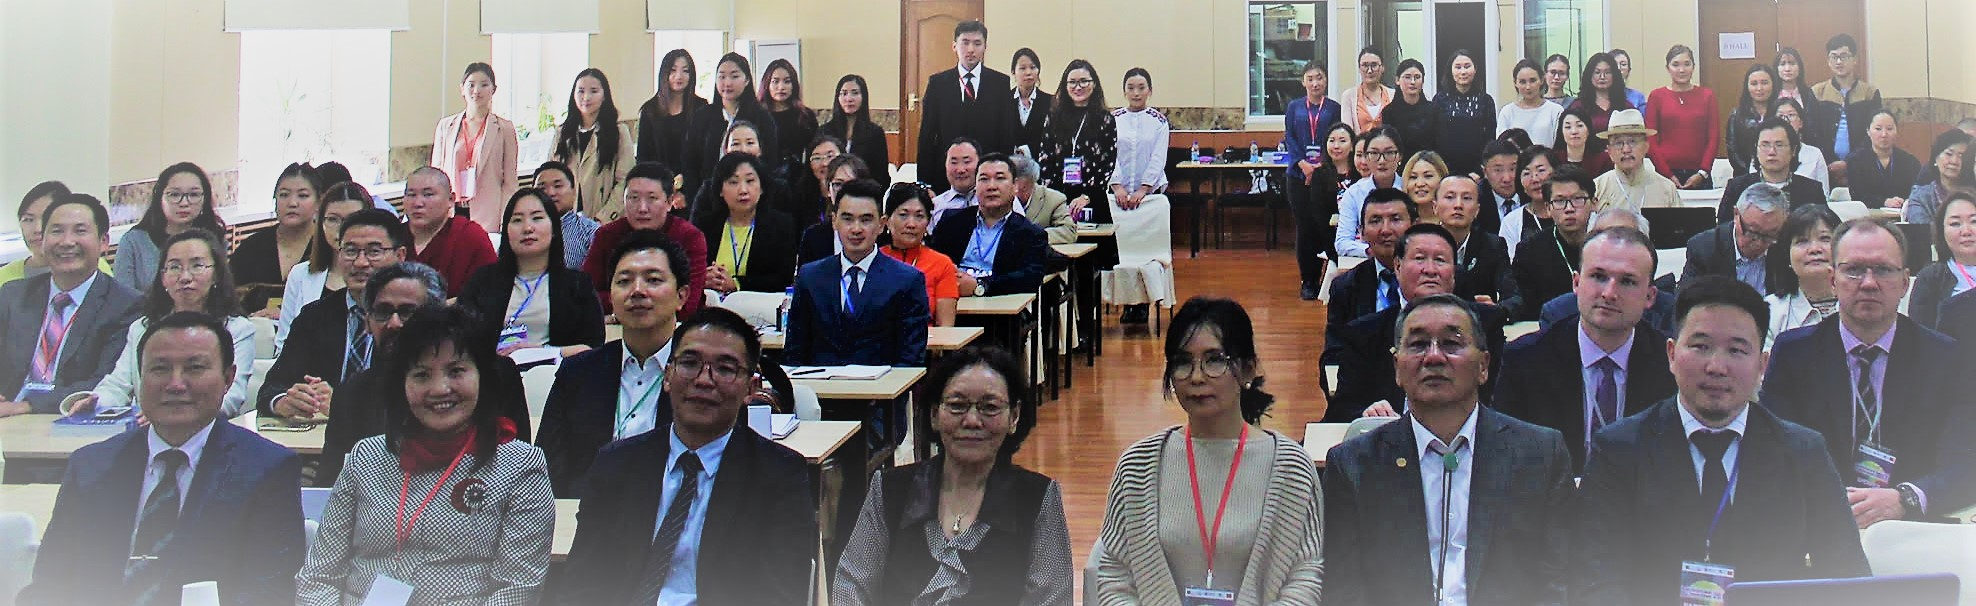 The 4th Annual Meeting of Mongolian Neuroscience Society